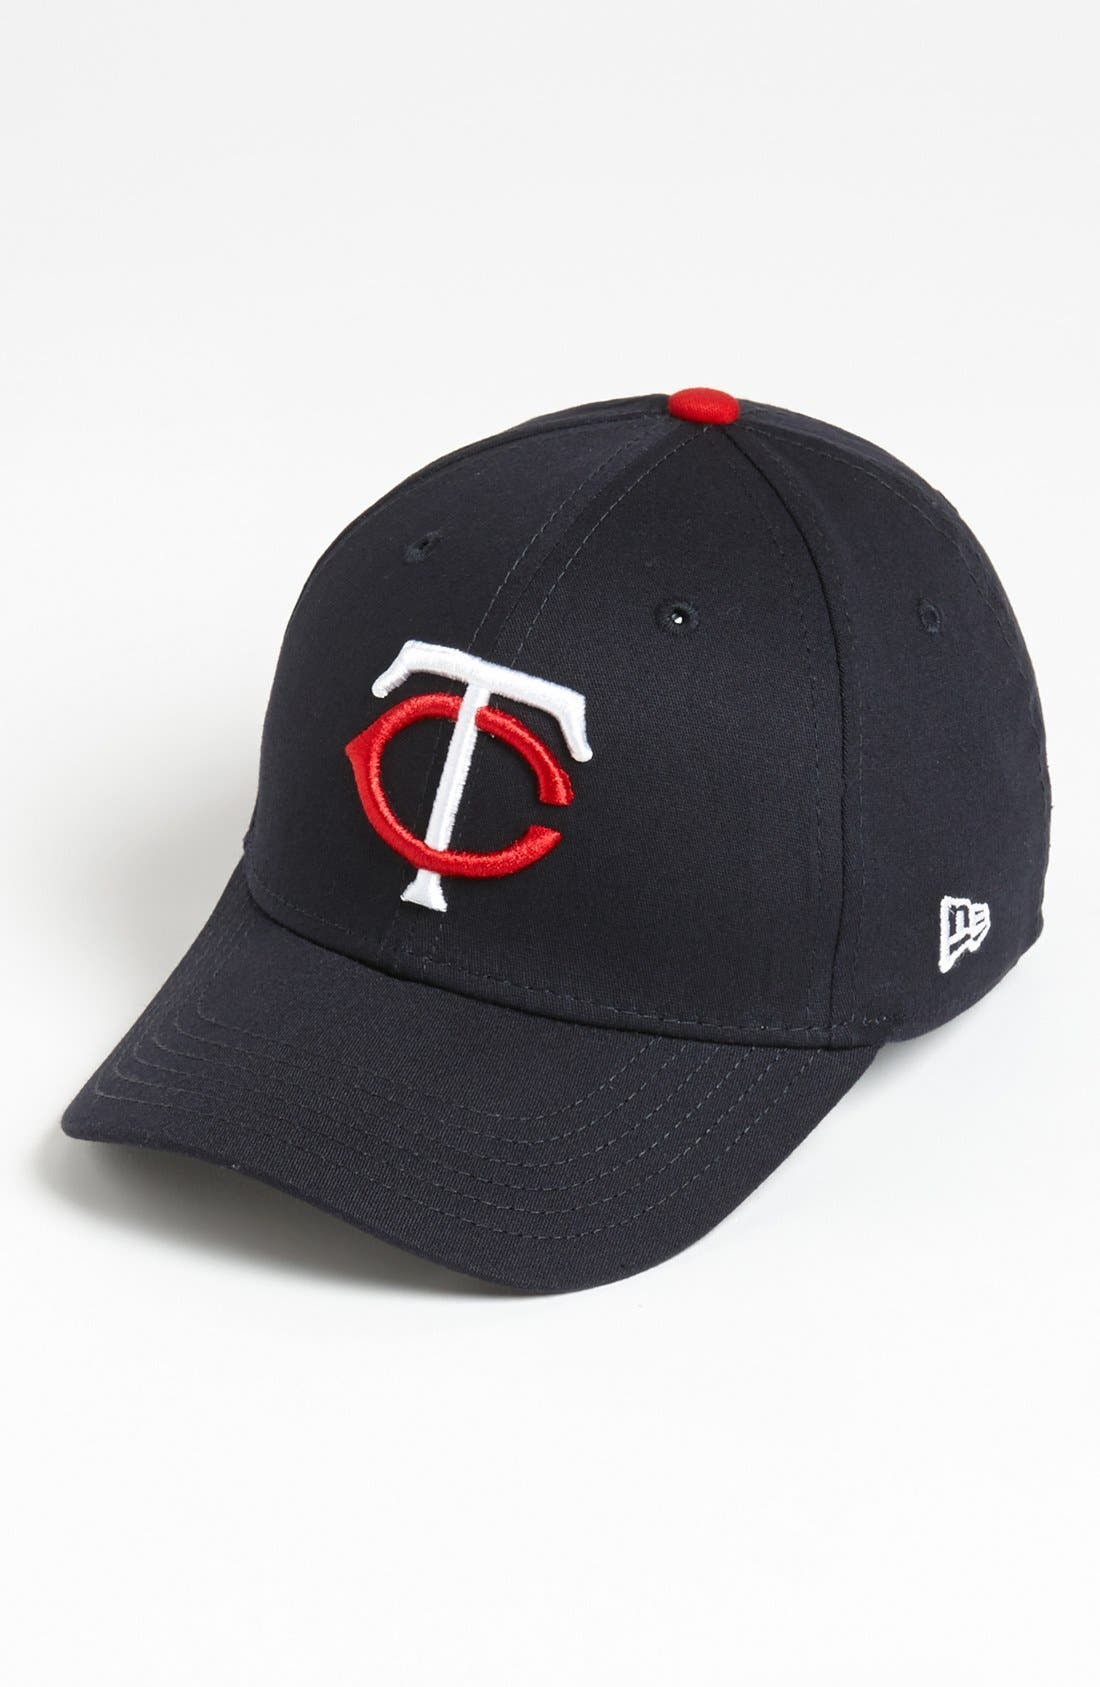 Alternate Image 1 Selected - New Era Cap 'Minnesota Twins - Tie Breaker' Baseball Cap (Big Boys)